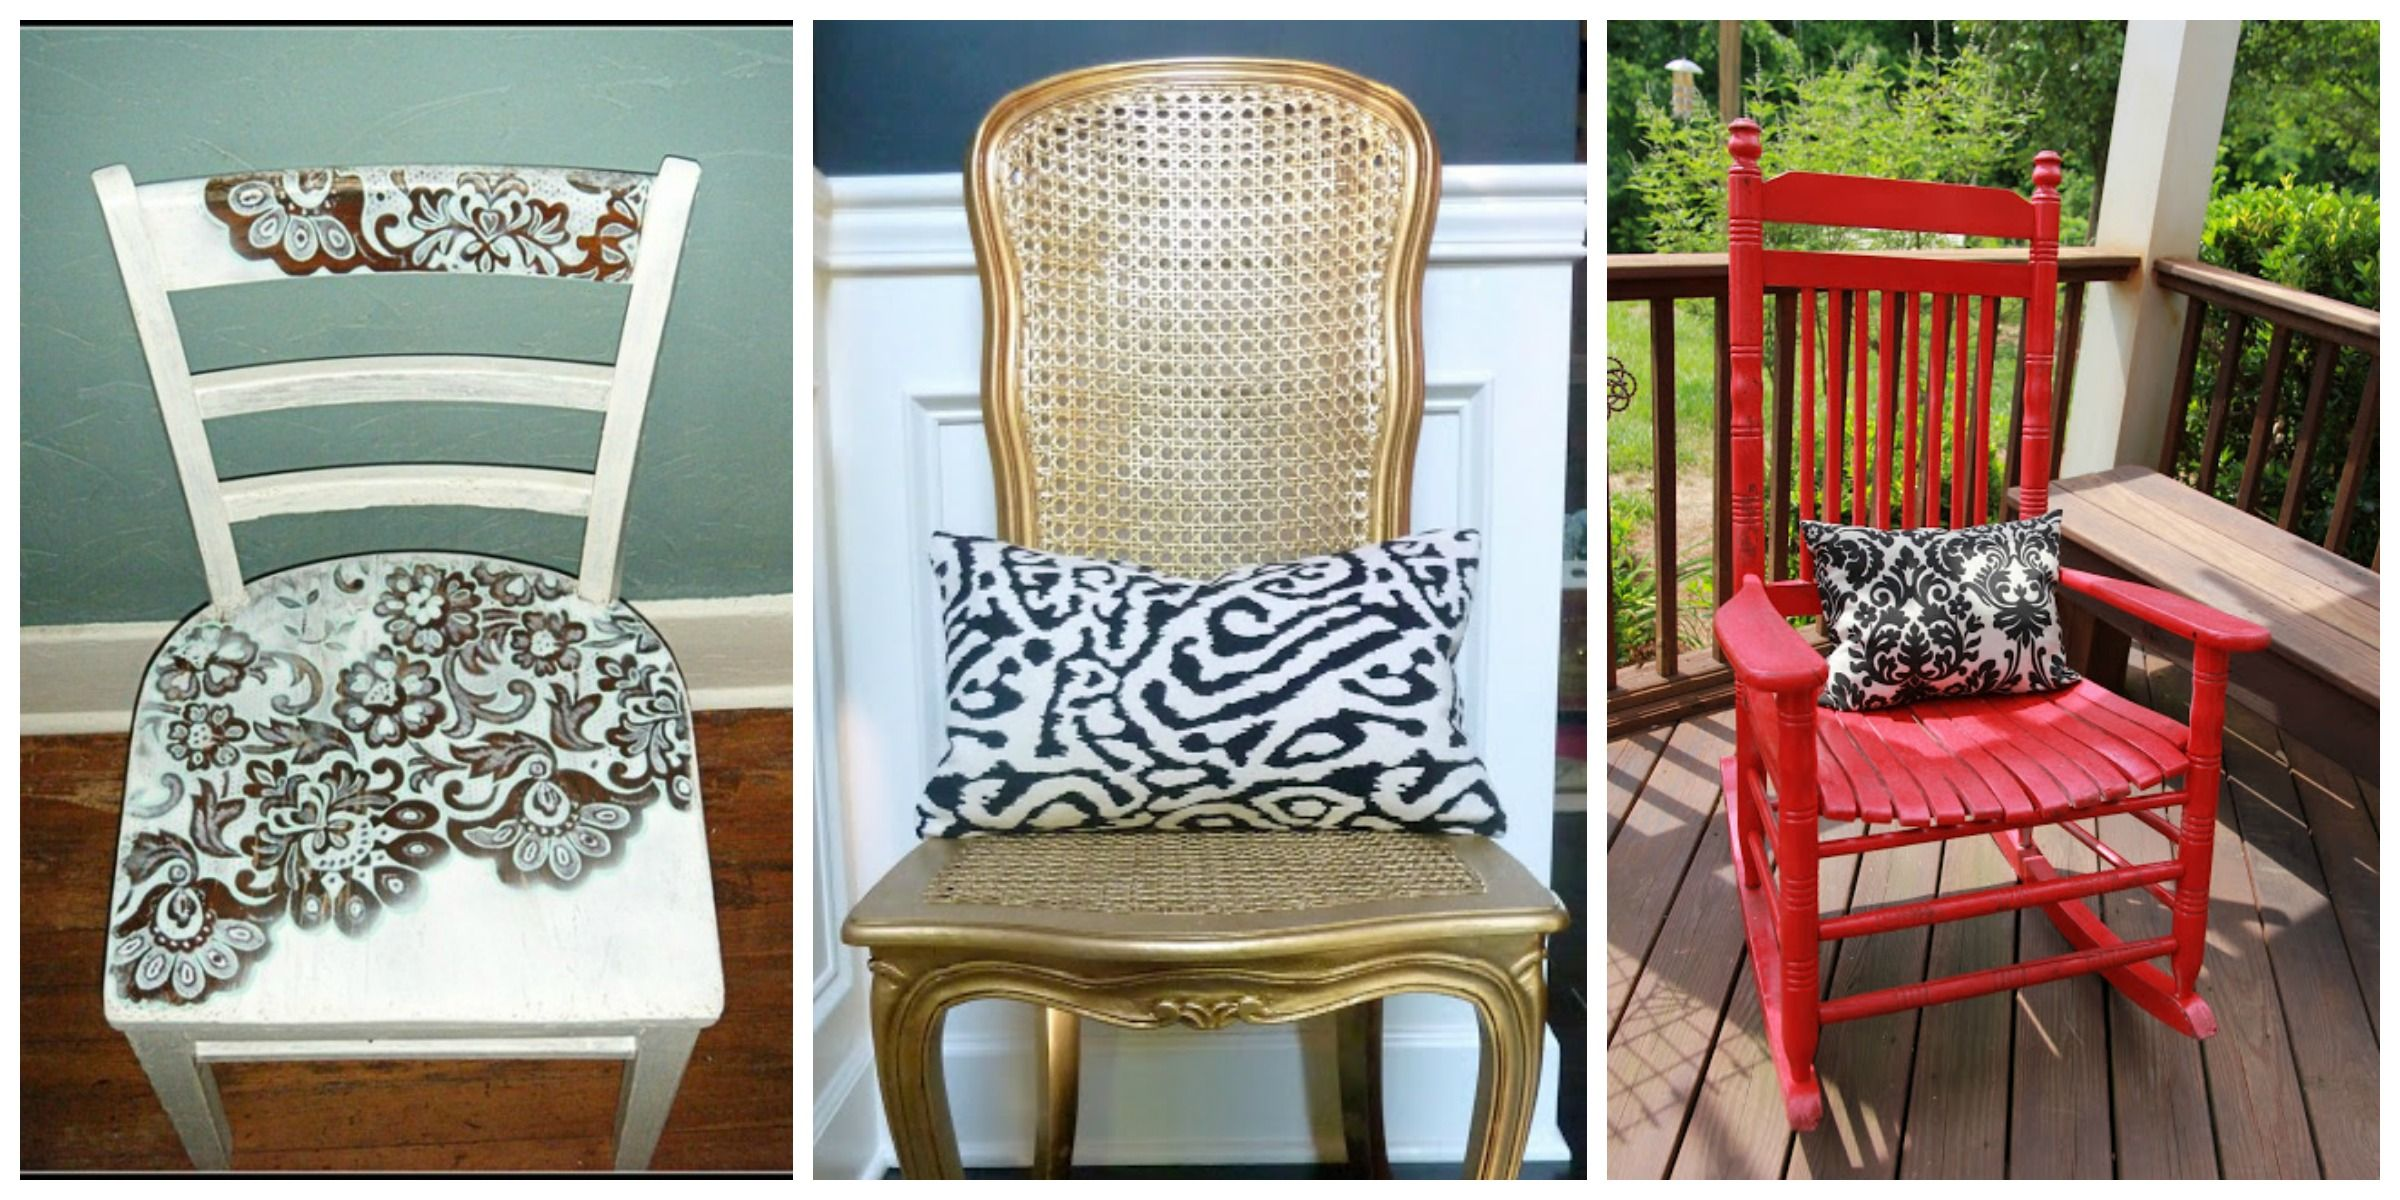 painted rocking chairs - Google Search